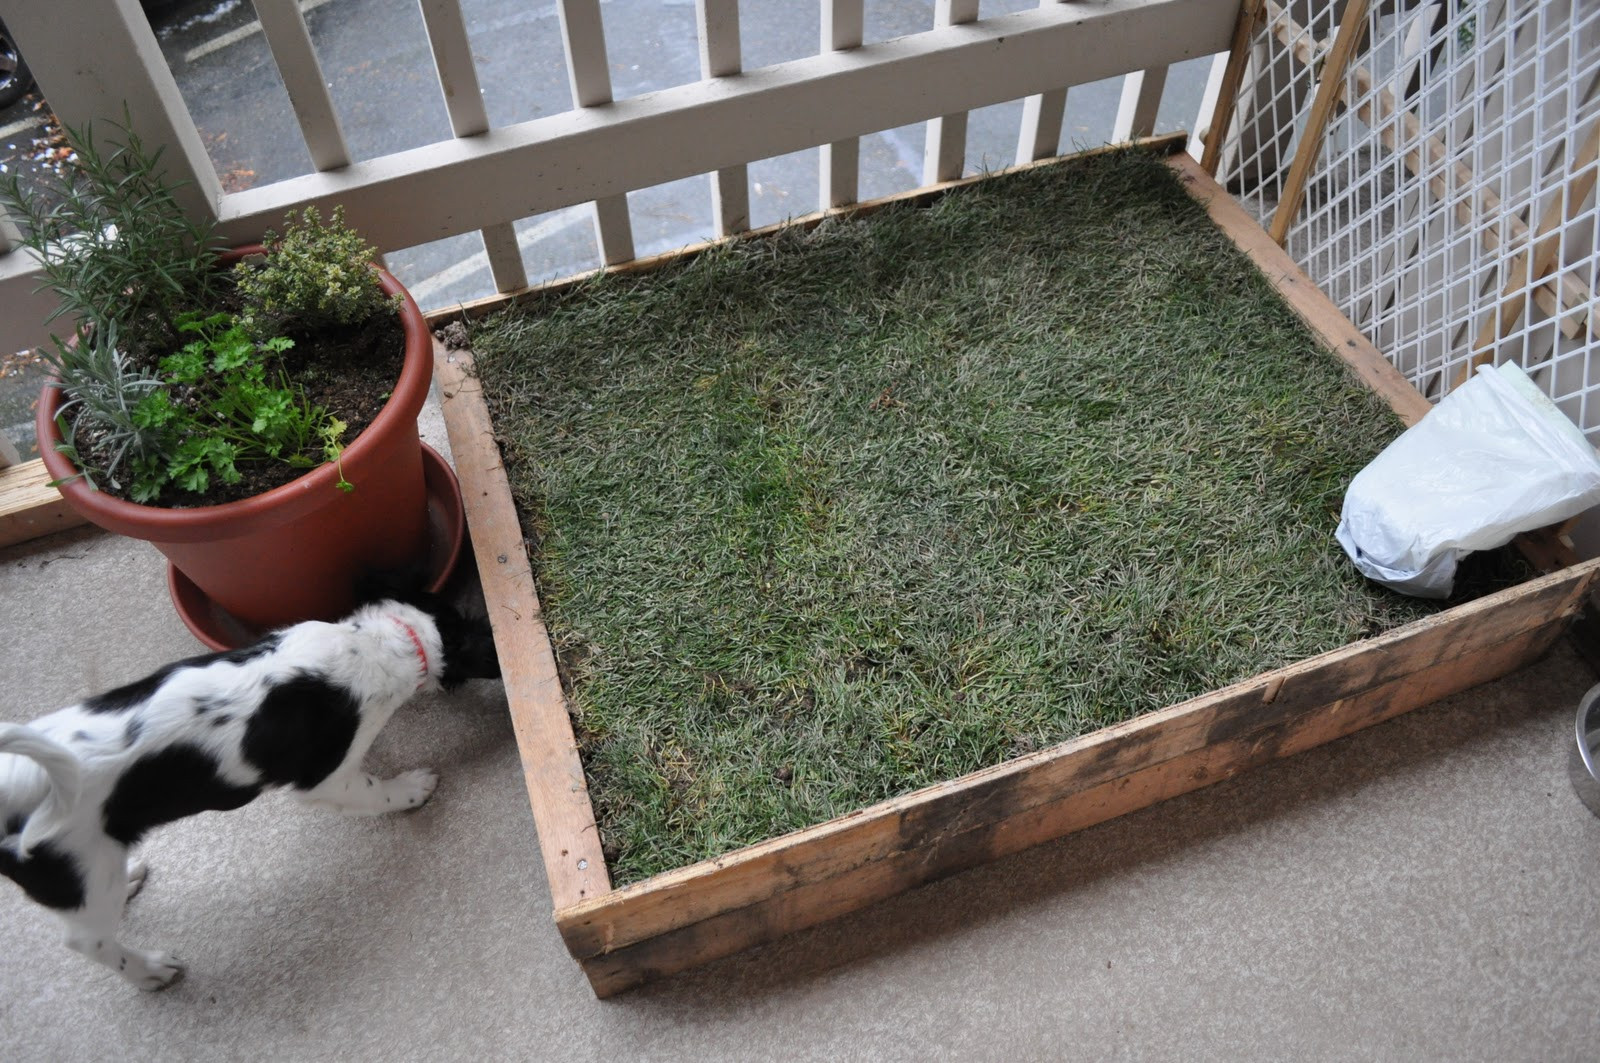 Best ideas about Patio Dog Potty DIY . Save or Pin Instead of walking their dog these people just let it shit Now.